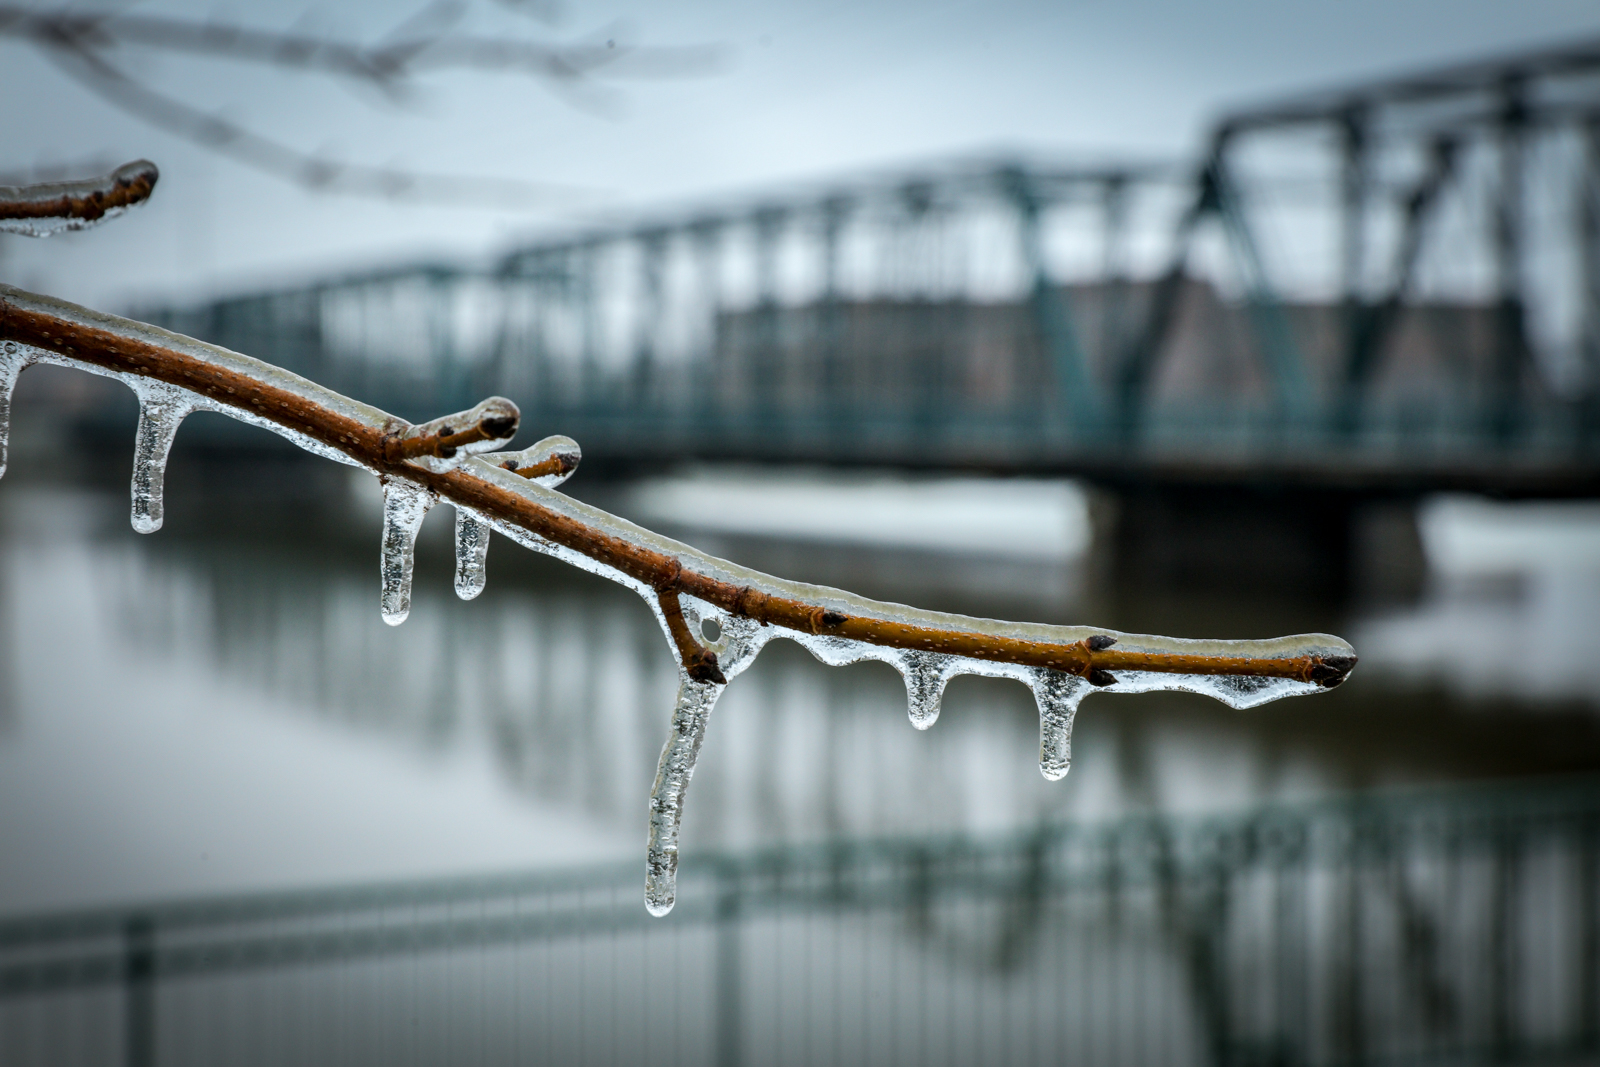 Grand Rapids was iced over after a night of freezing rain and sleet on Feb. 6. 2019. (Michael Buck/WOOD TV8)